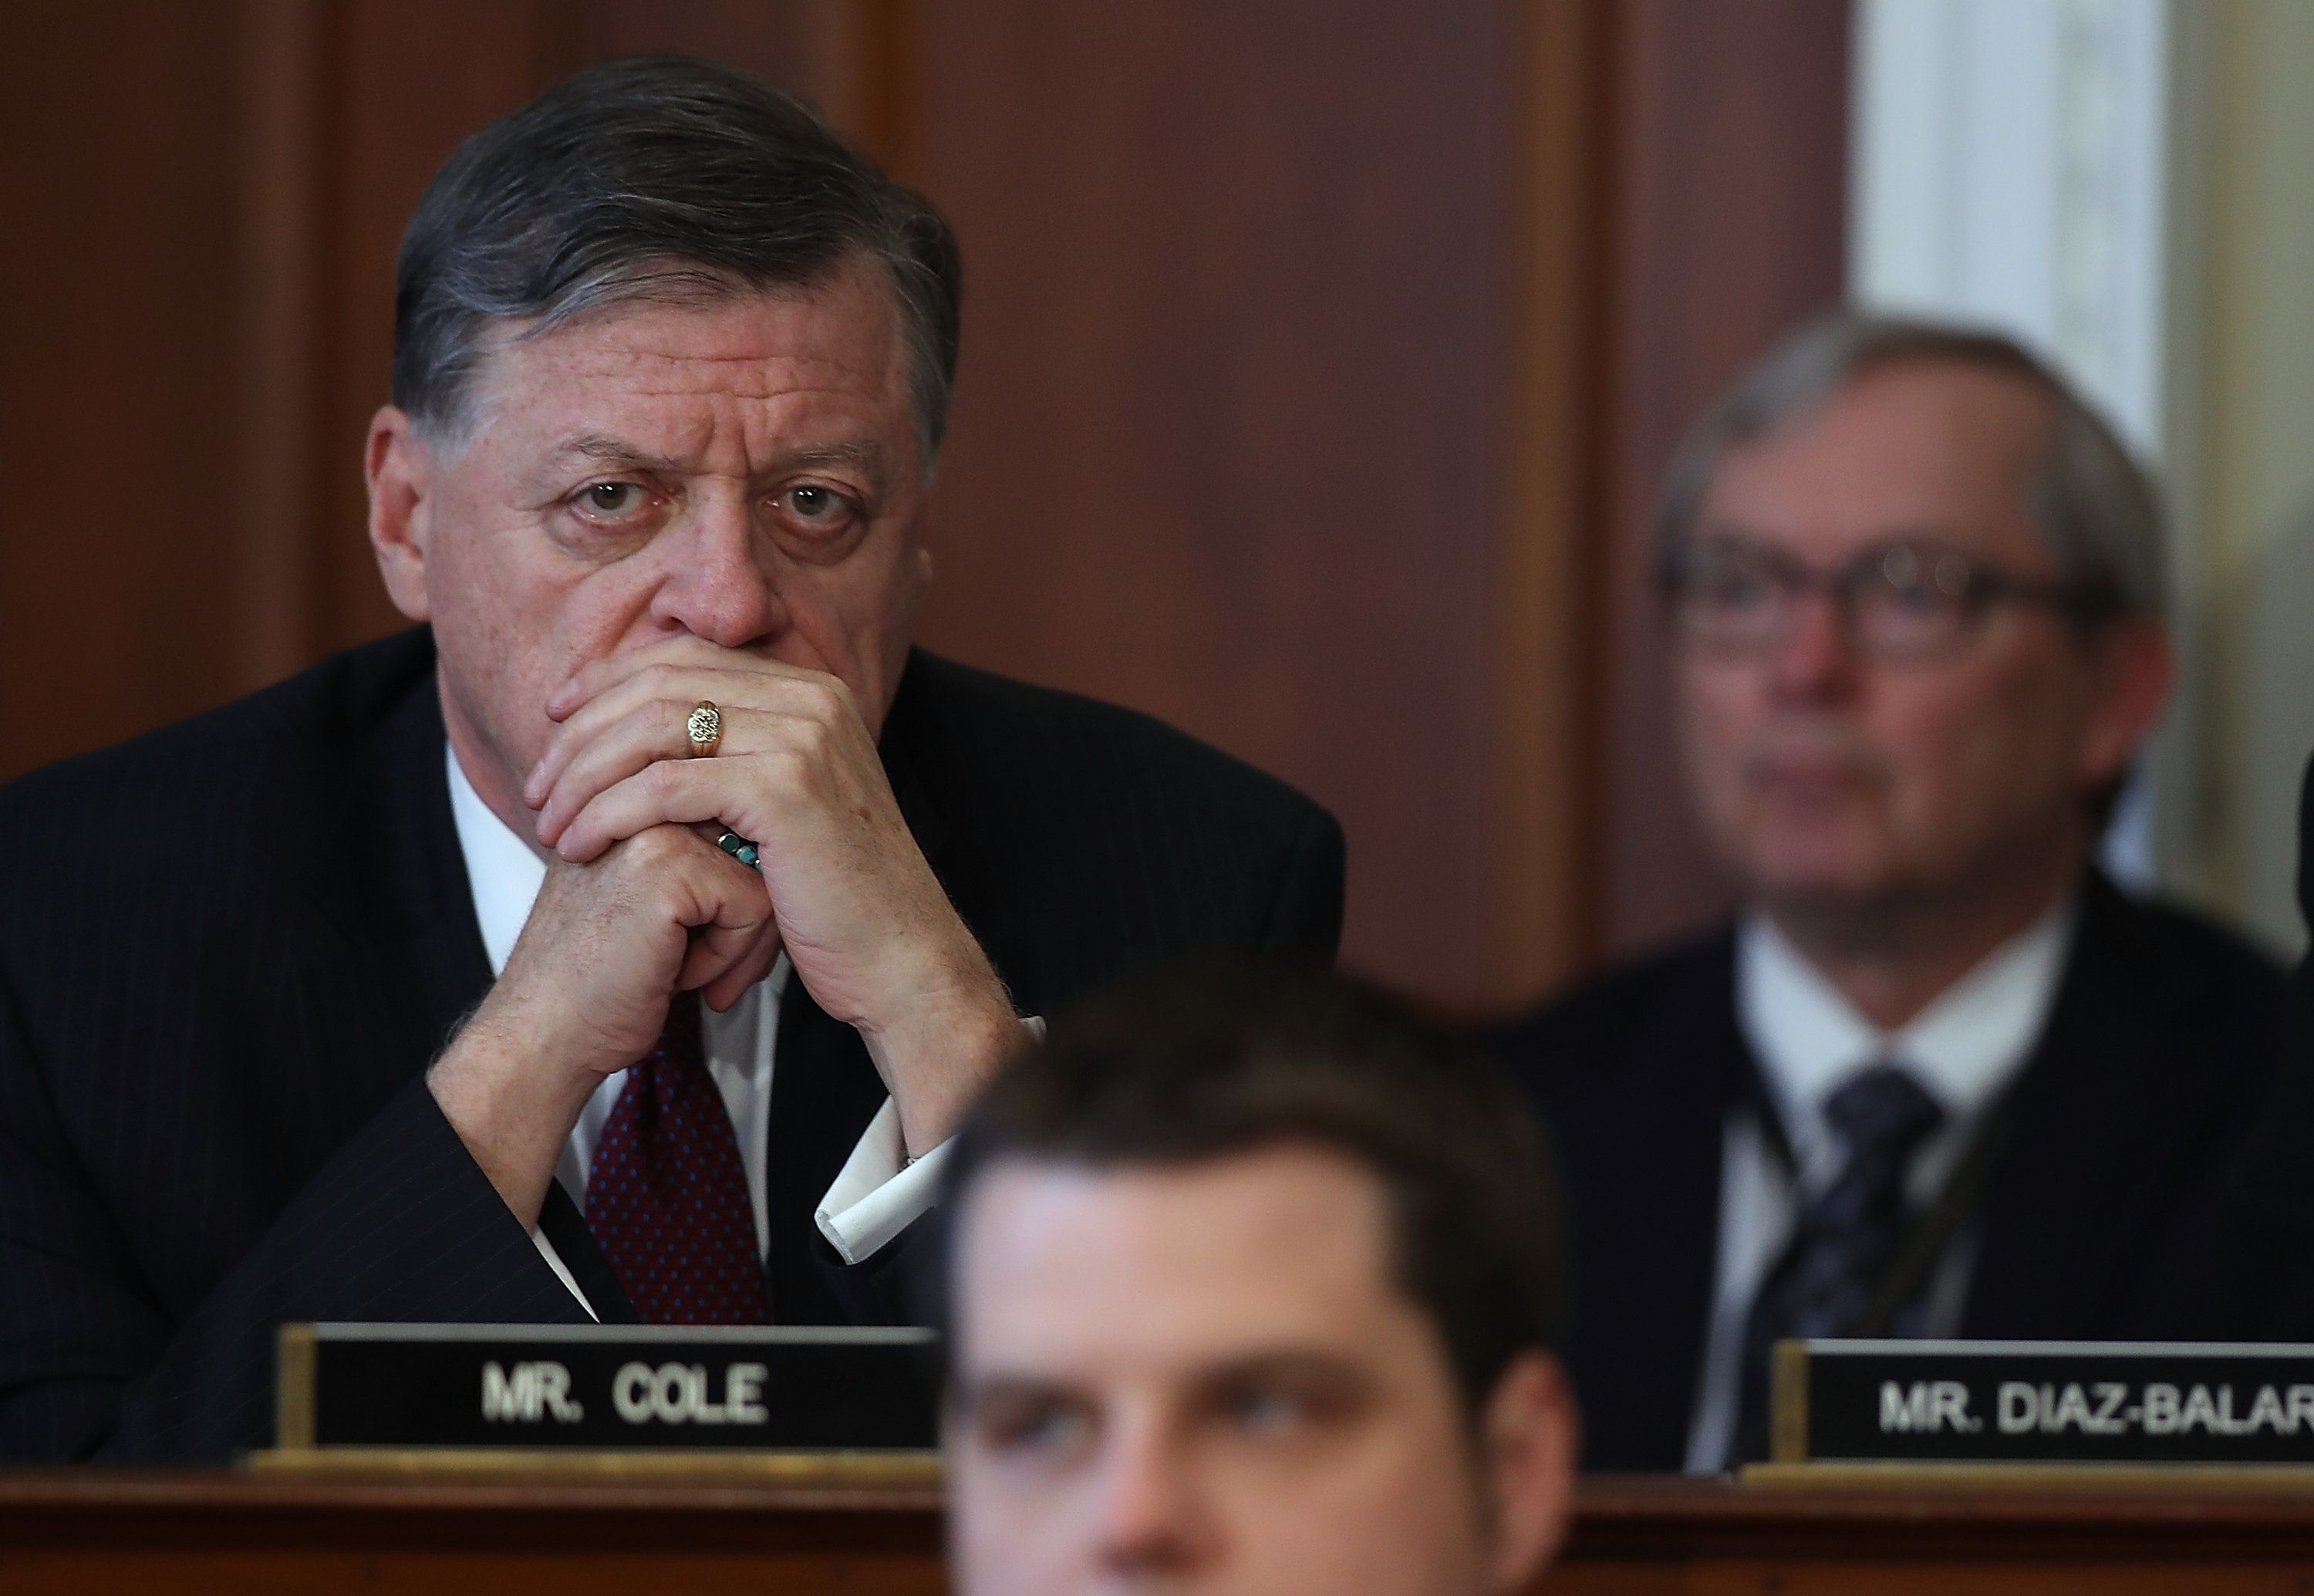 WASHINGTON, DC - MARCH 16:  U.S. Rep. Tom Cole (L) (R-OK) looks on during a House Budget Committee markup of the Republican health care bill on Capitol Hill  on March 16, 2017 in Washington, DC. The House Budget Committee voted 19 to 17 to approve legislation that will be sent to the full house to repeal the Affordable Care Act.  (Photo by Justin Sullivan/Getty Images)